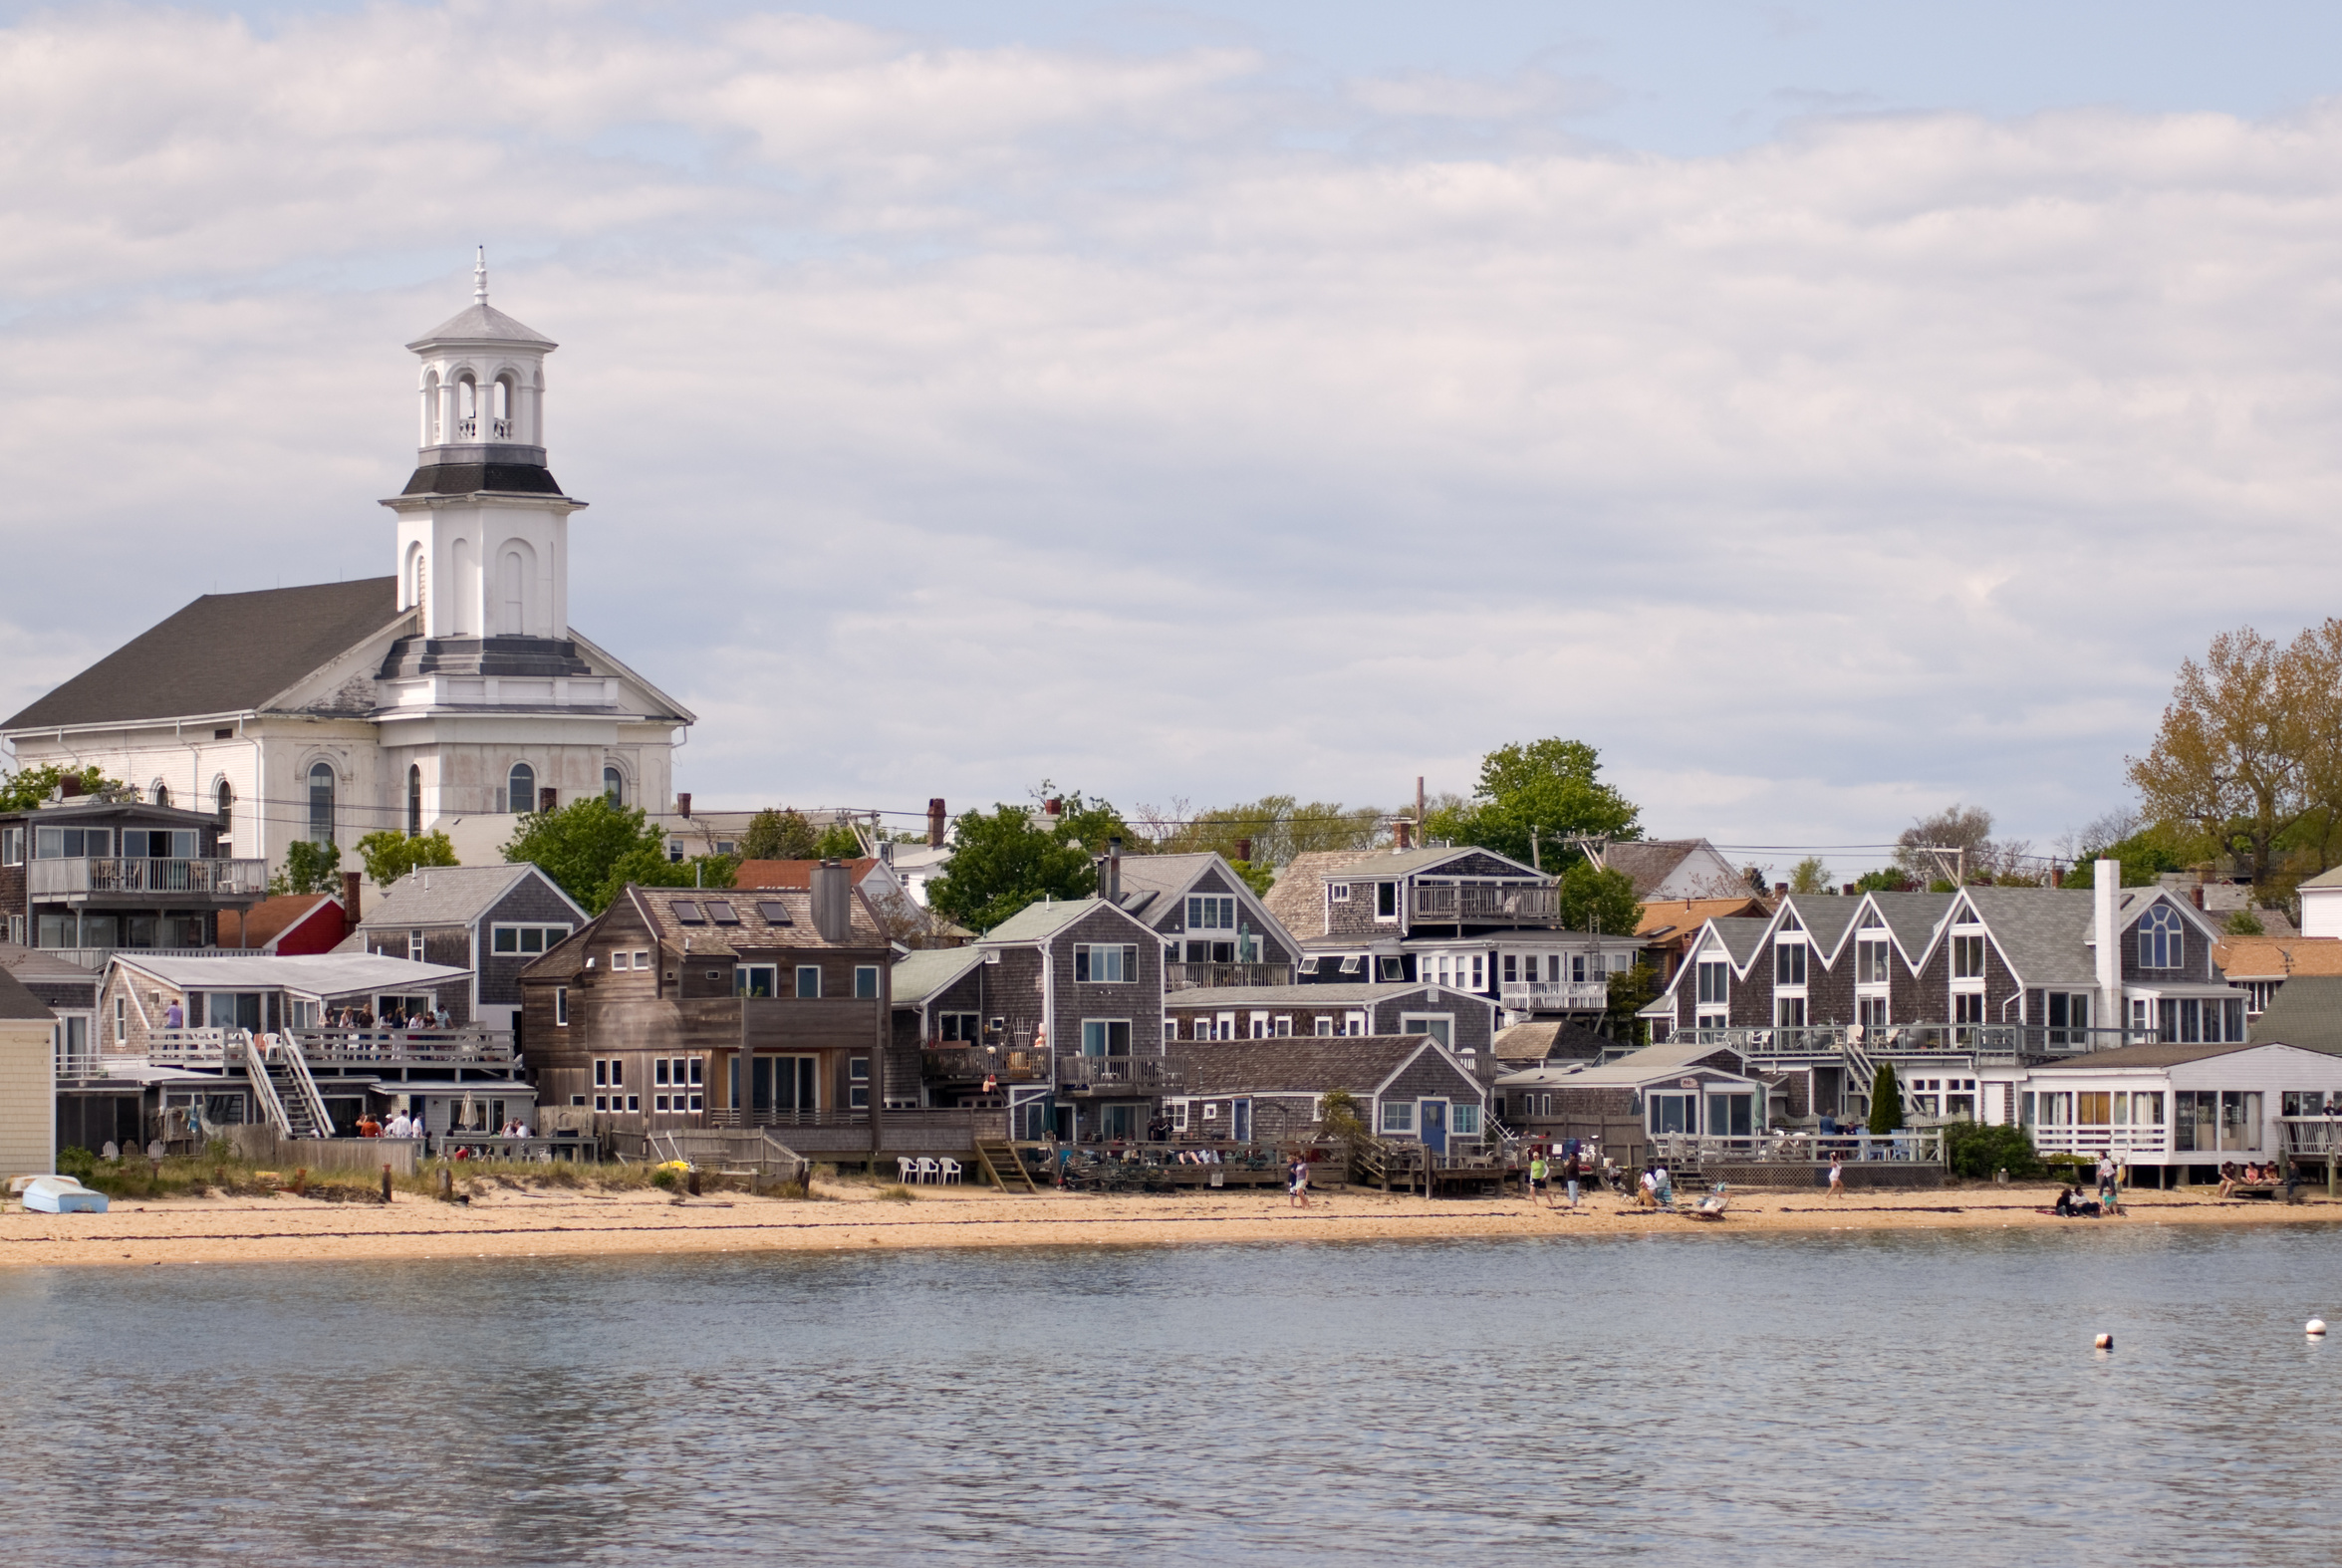 Beachfront houses in Provincetown, Cape Cod